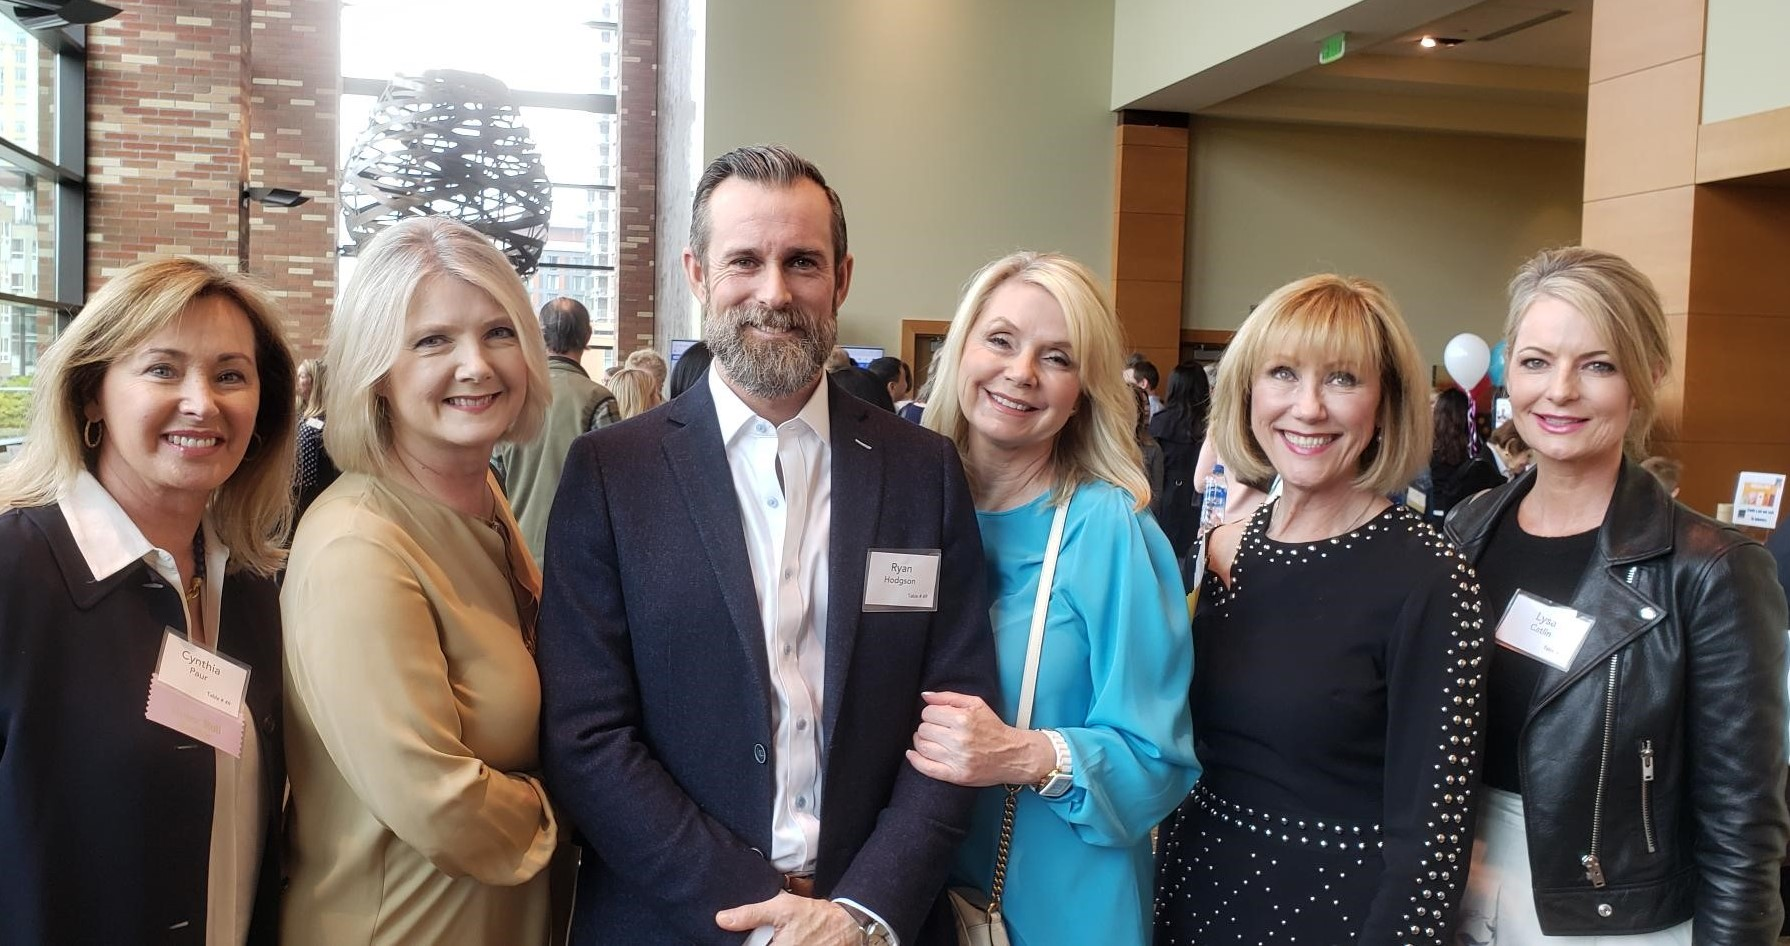 Earlier this year I had the pleasure of attending a luncheon for the Bellevue Schools Foundation with some of my colleagues.